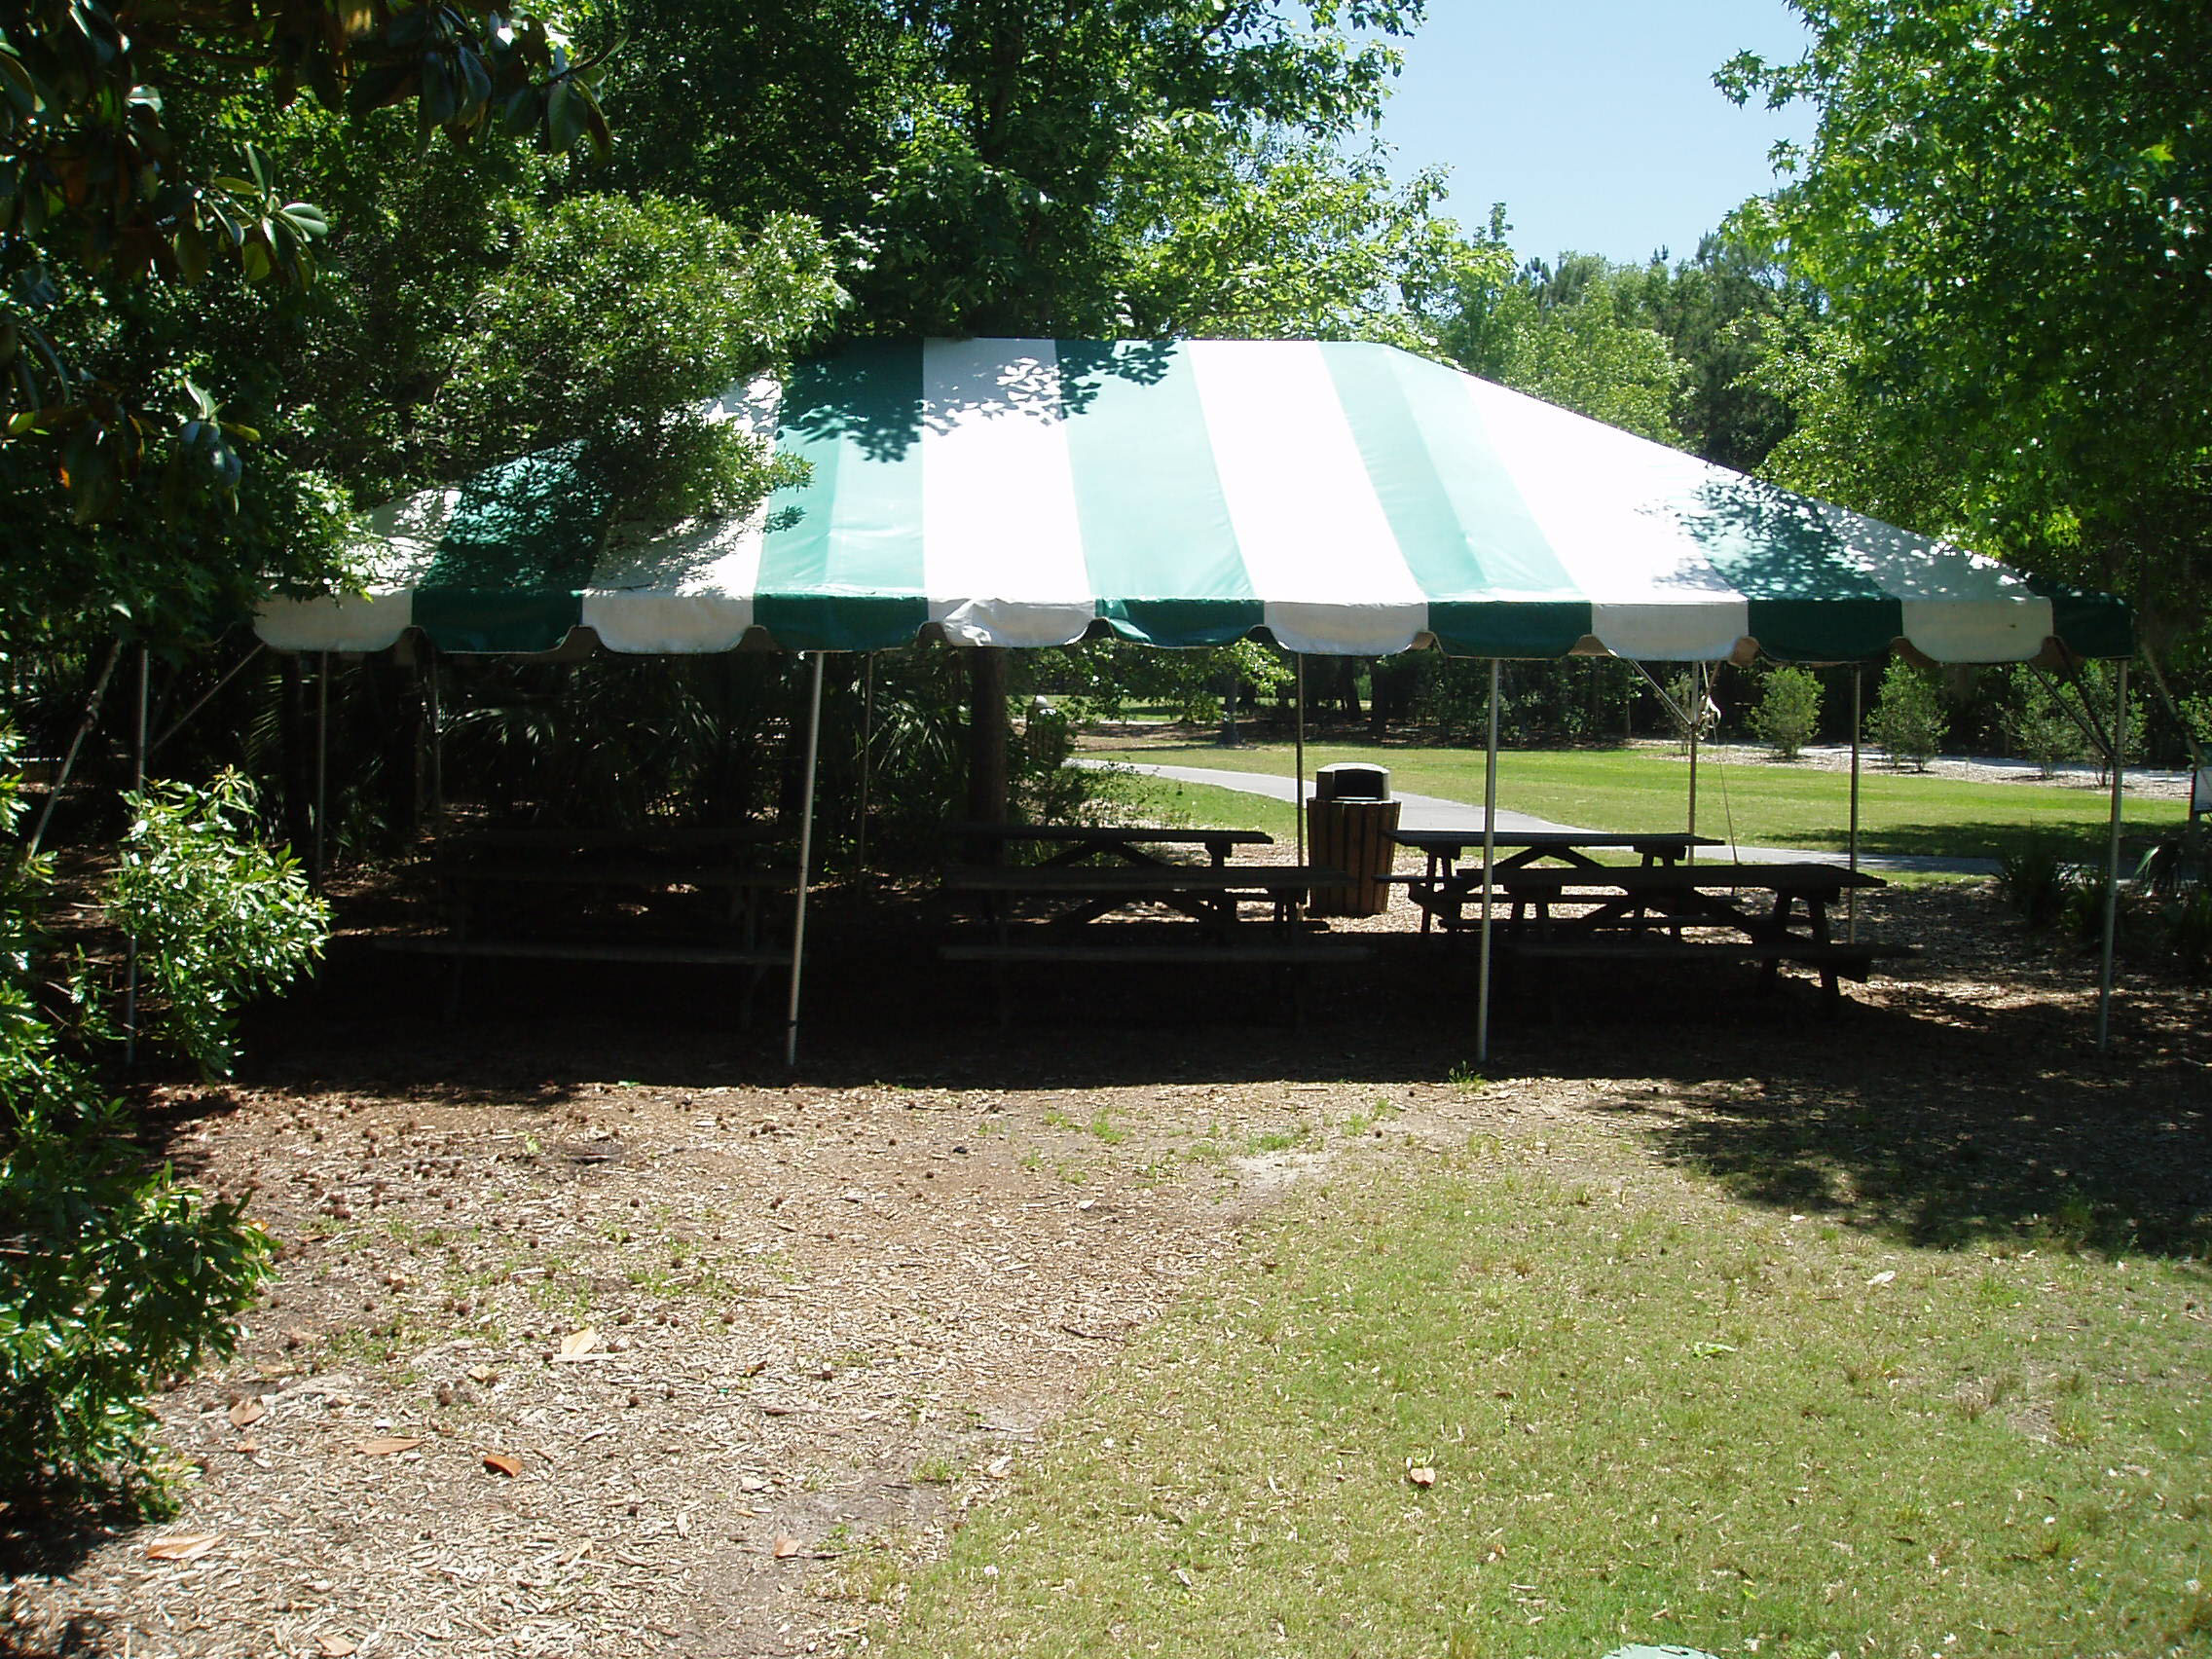 Image of the Funyard Tent